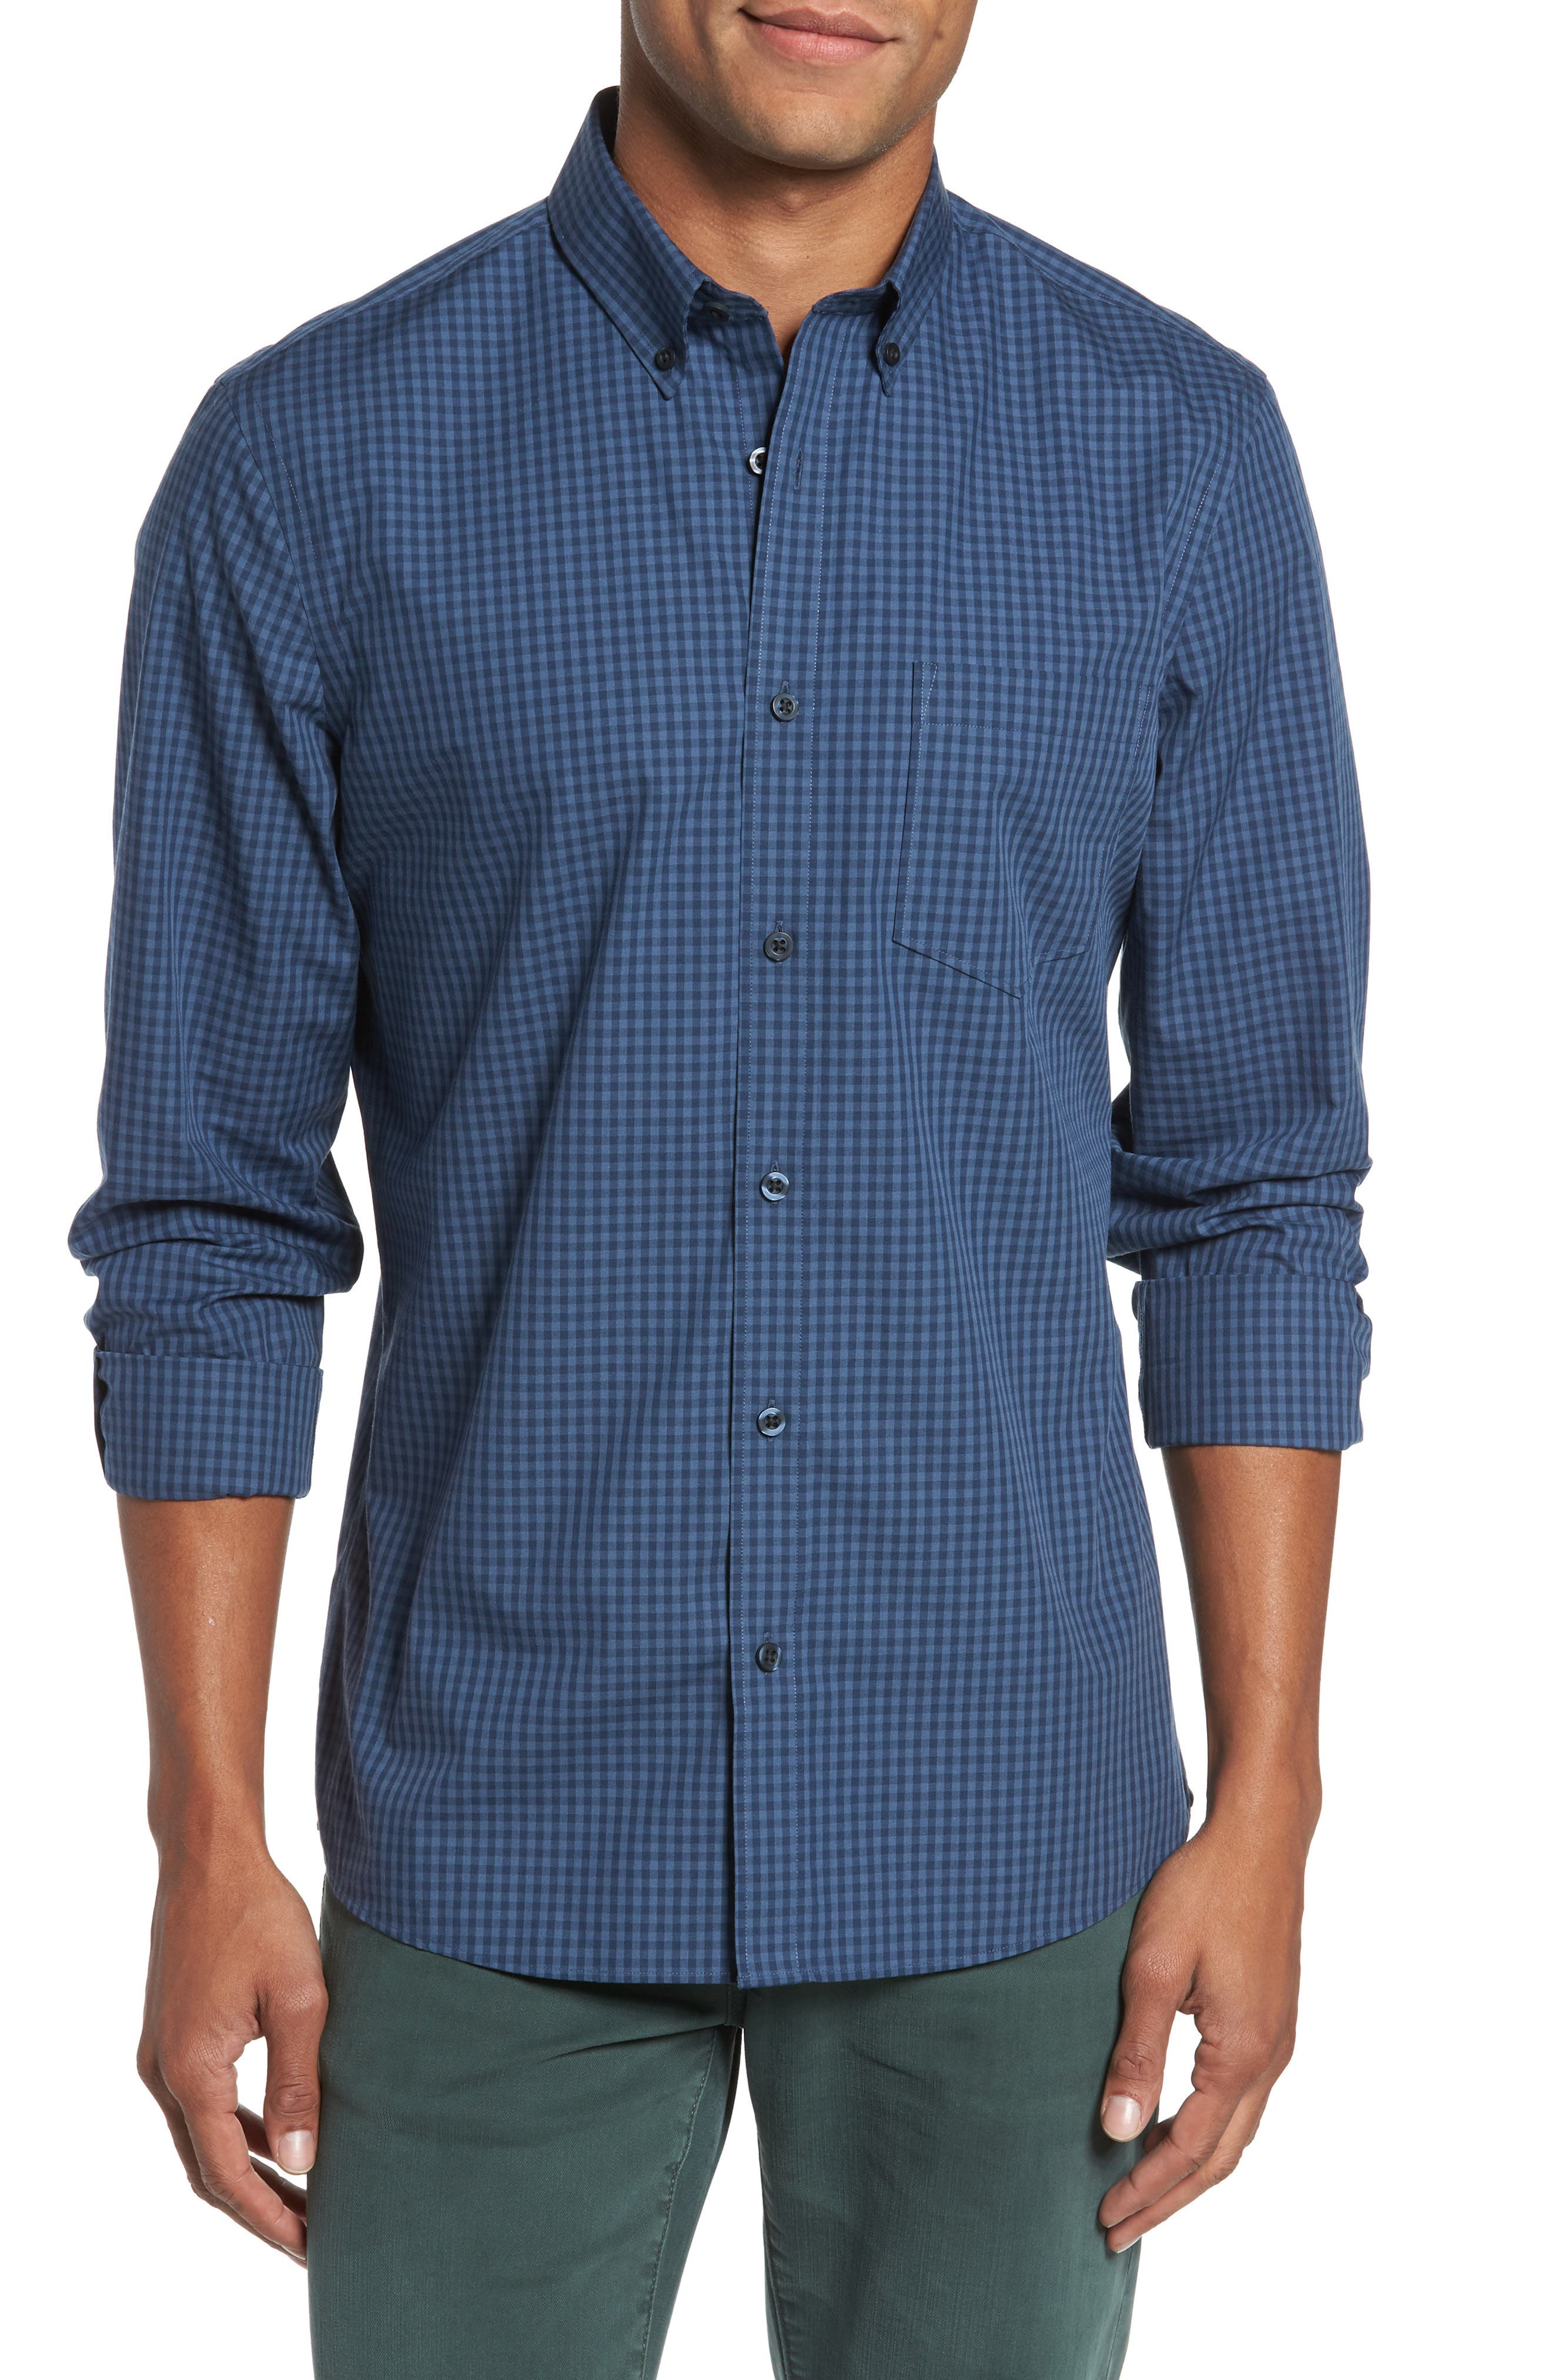 Trim Fit Non-Iron Gingham Sport Shirt,                             Main thumbnail 1, color,                             Blue Vintage Navy Gingham